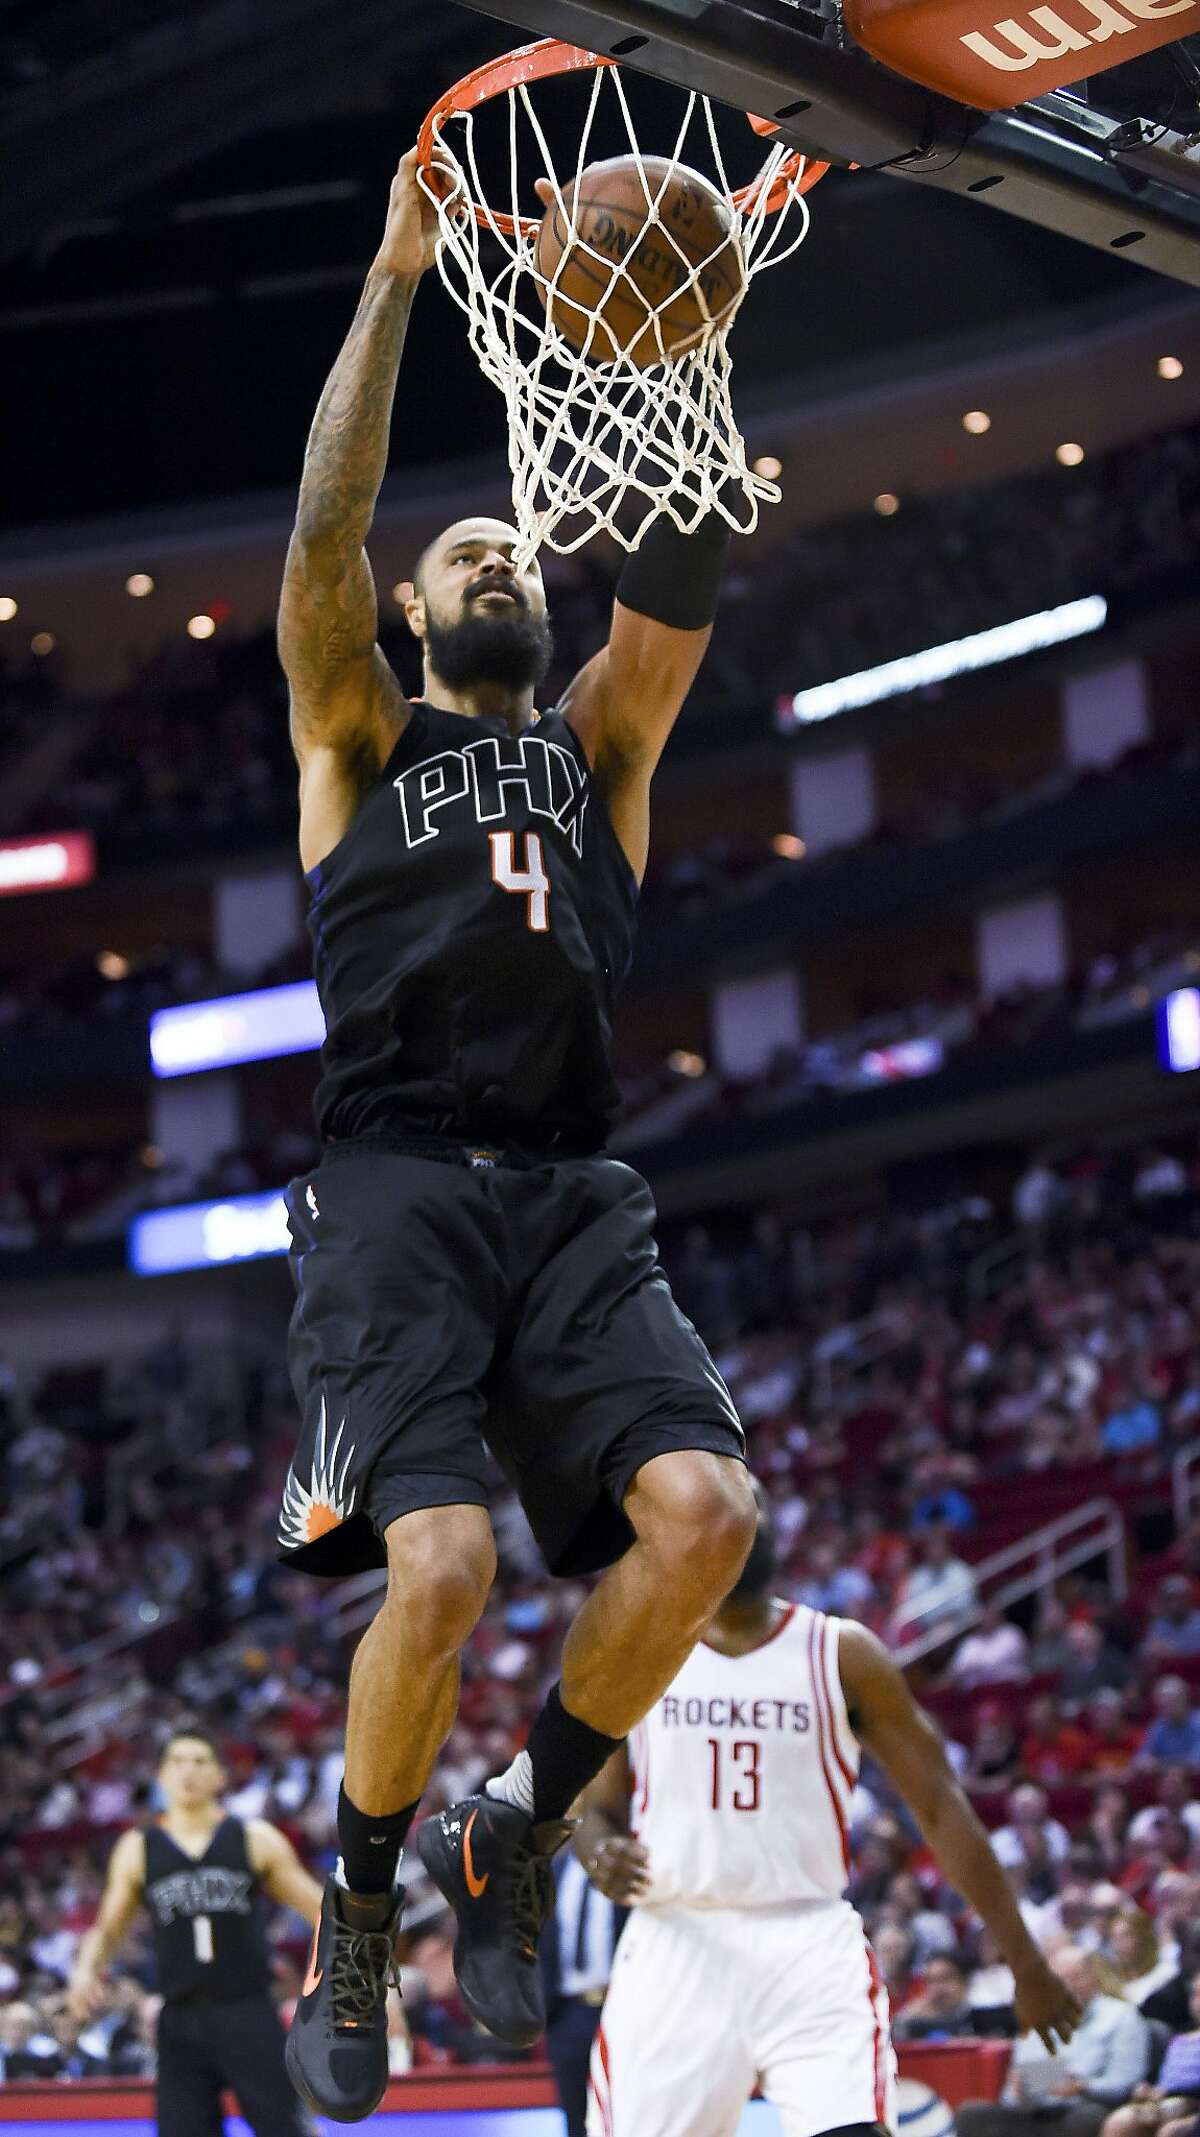 Phoenix Suns center Tyson Chandler dunks during the second half of an NBA basketball game against the Houston Rockets, Thursday, April 7, 2016, in Houston. Phoenix won 124-115. (AP Photo/Eric Christian Smith)